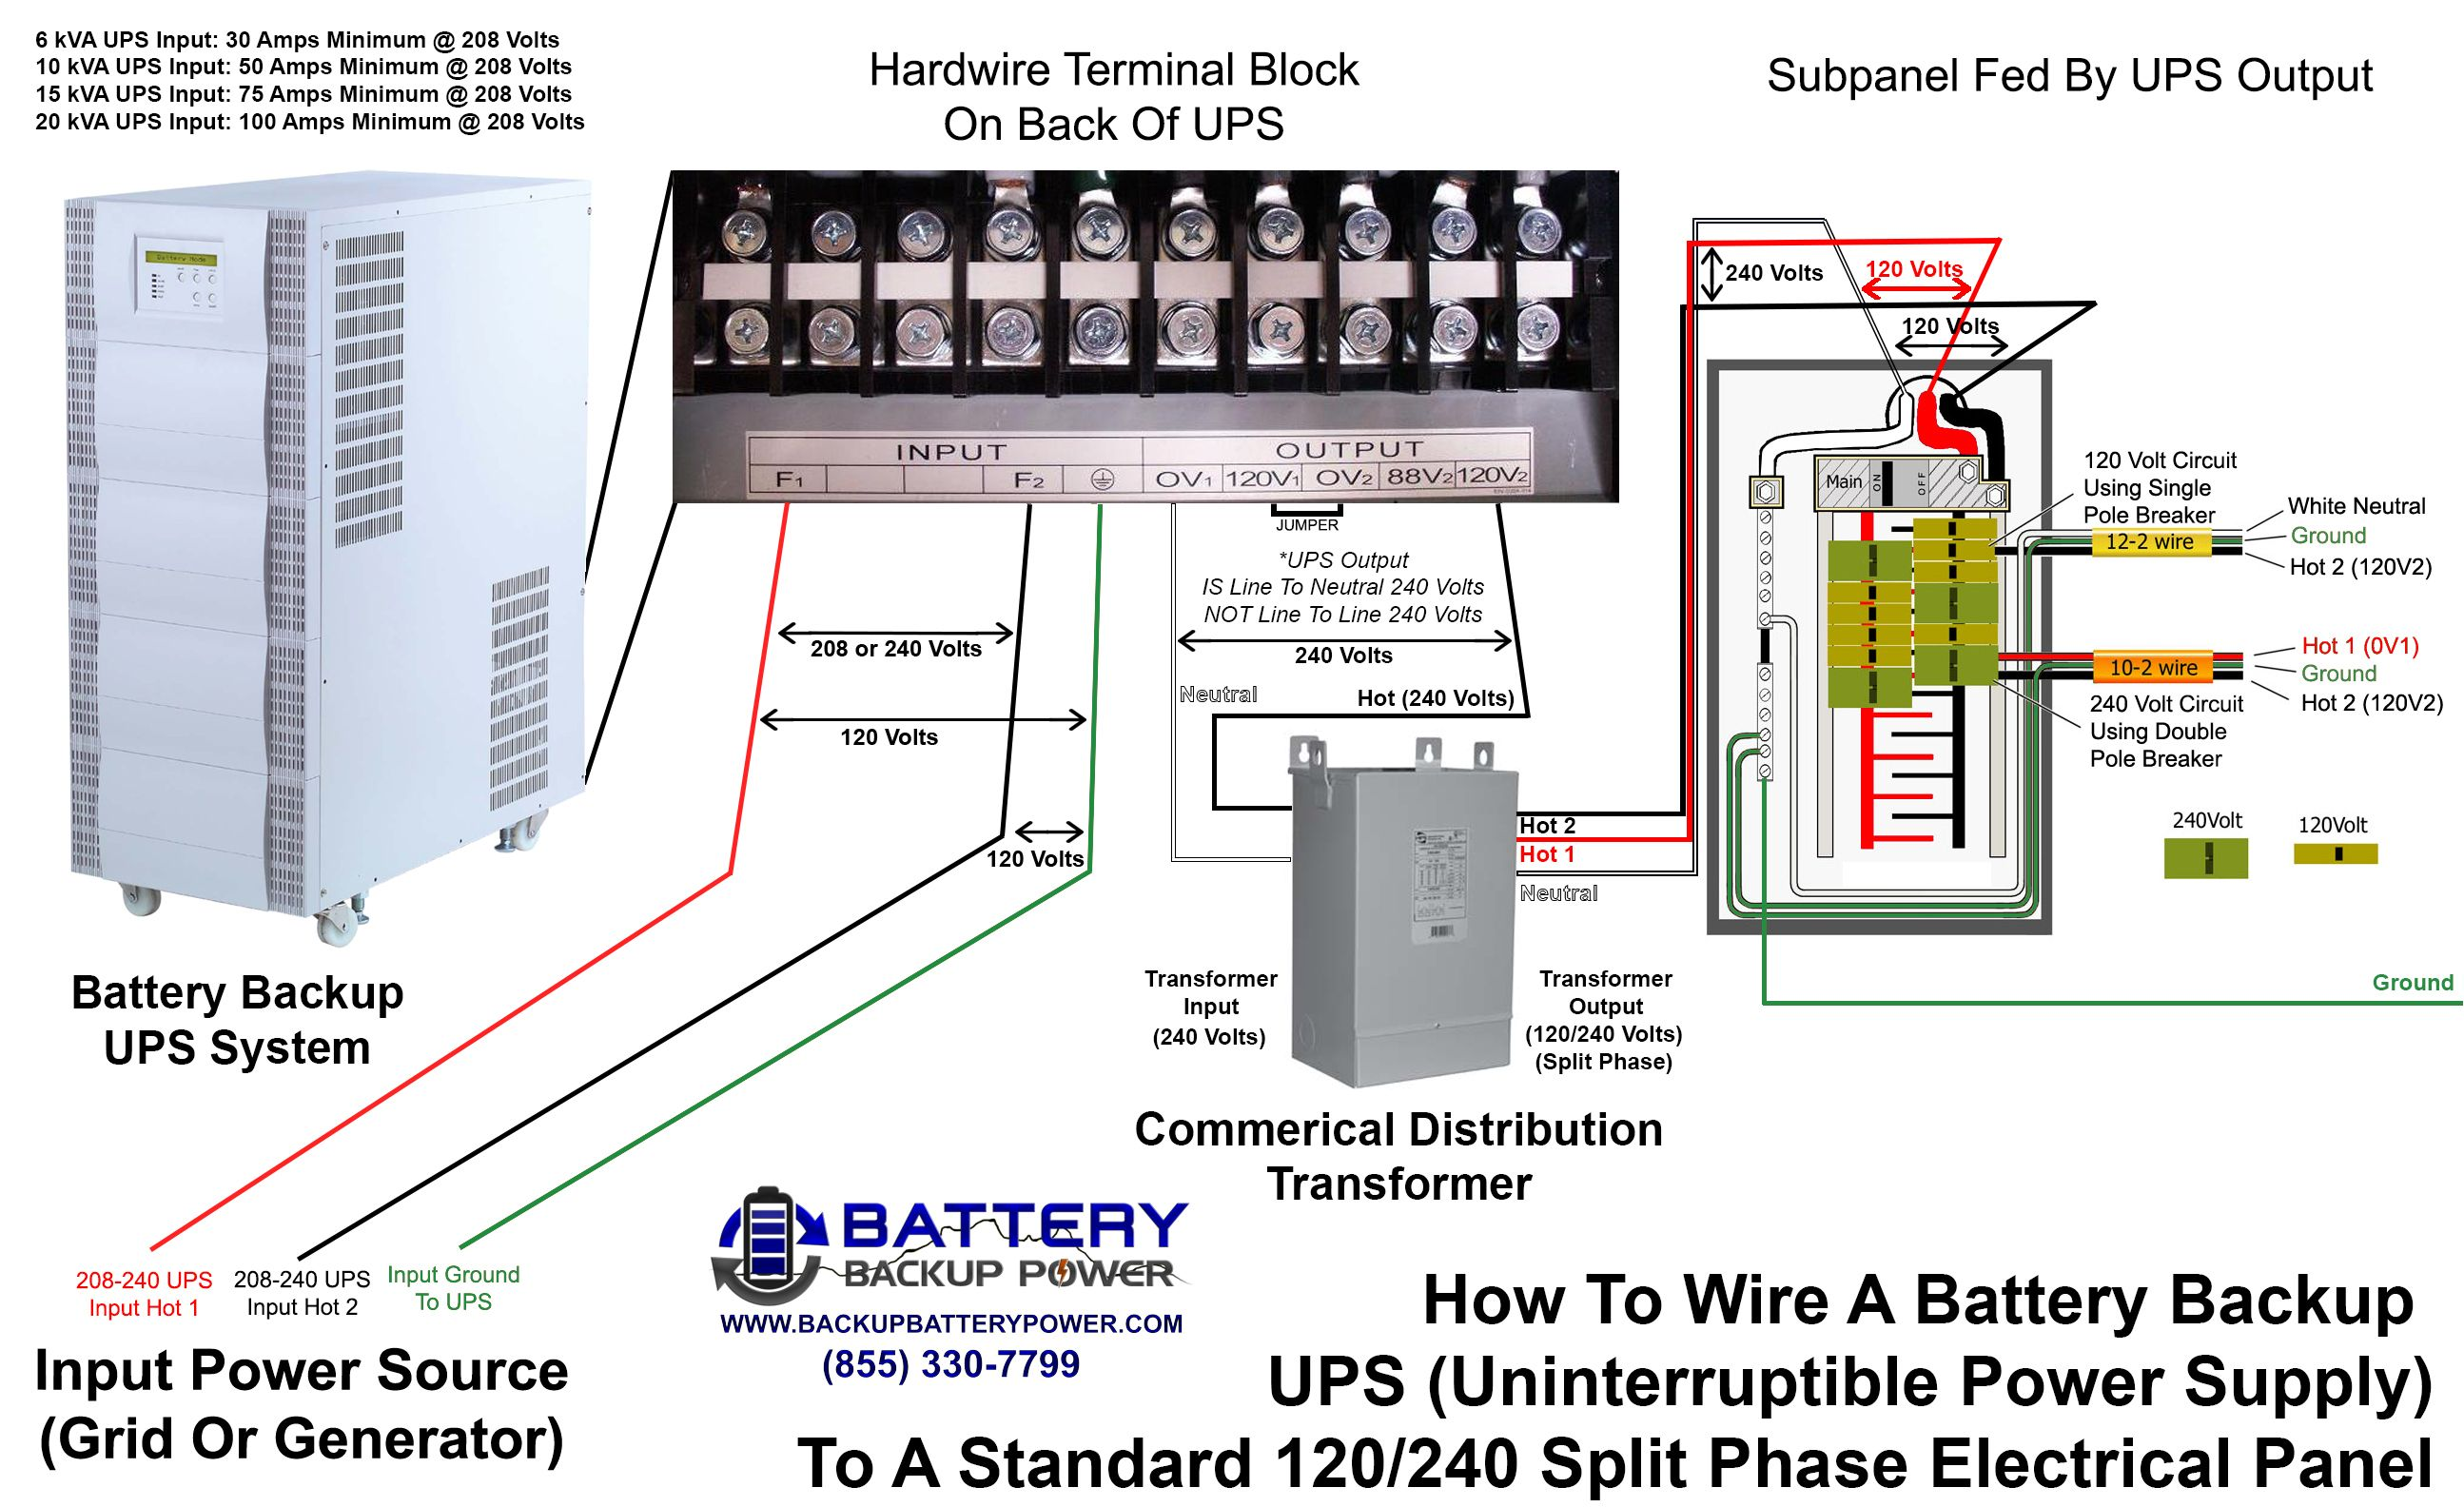 how to wire a ups to a standard 120 240 split phase electrical panel diagram [ 2590 x 1584 Pixel ]